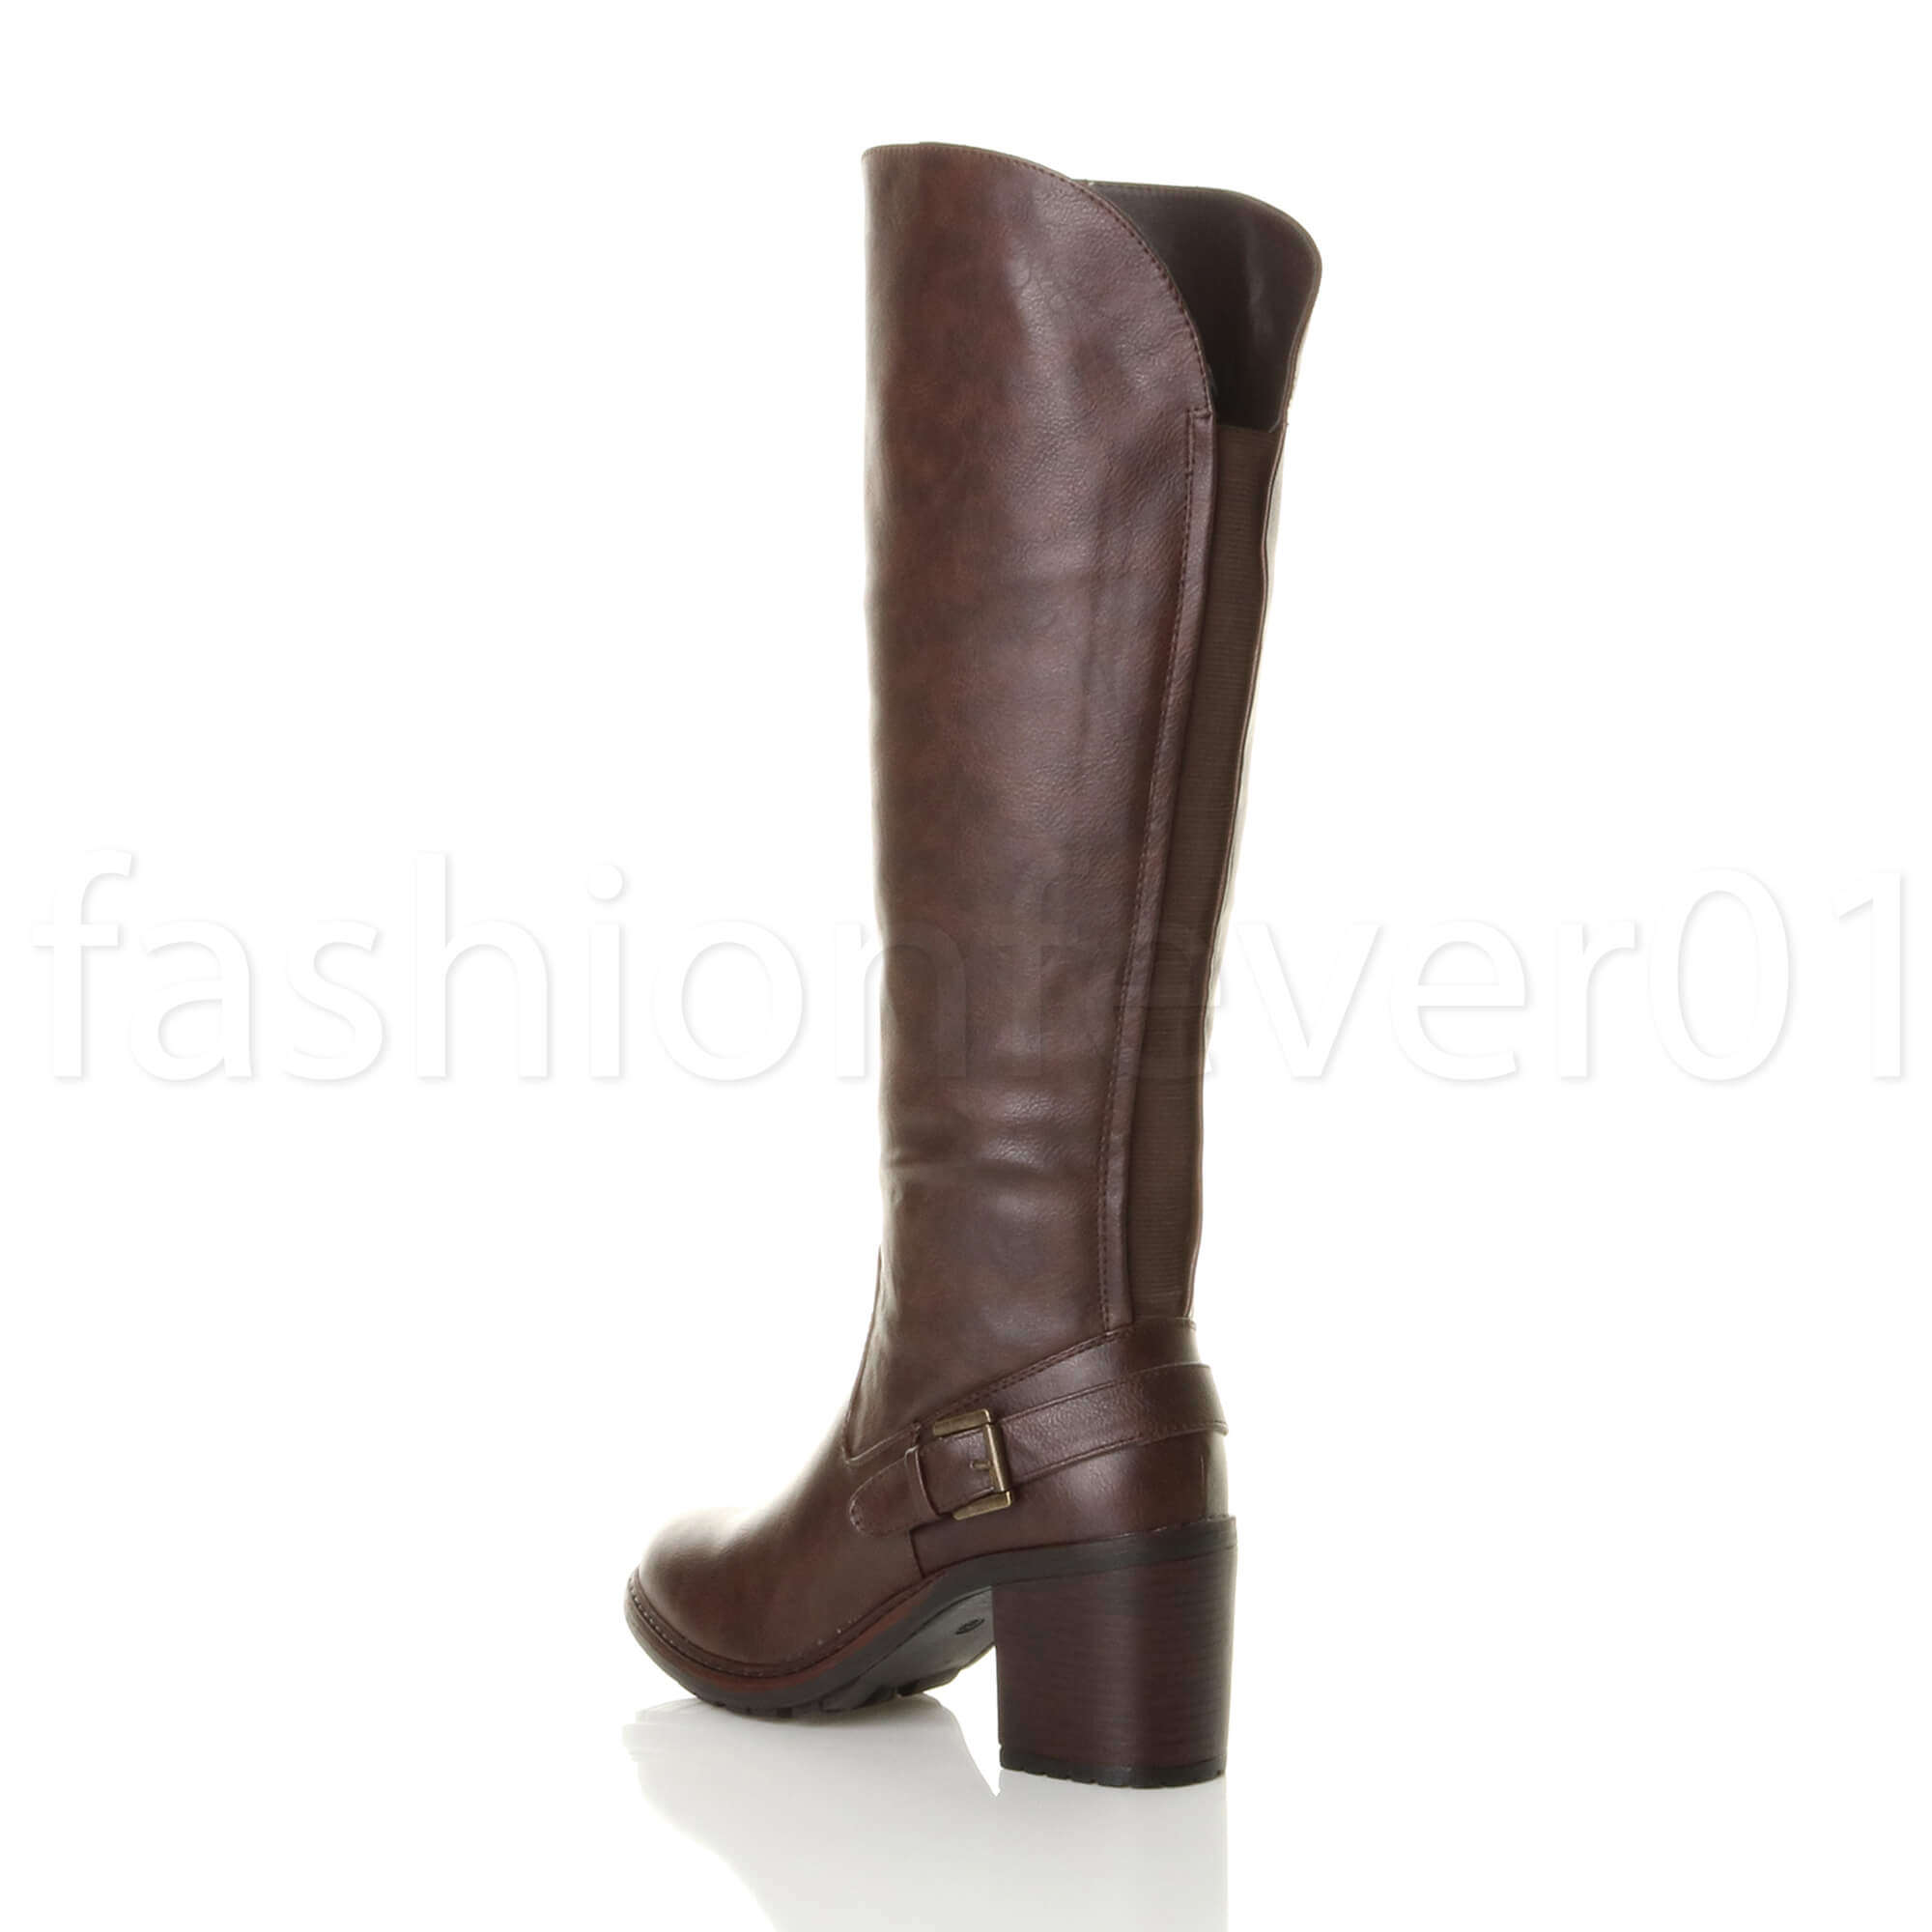 WOMENS-LADIES-BUCKLE-LOW-MID-HIGH-BLOCK-HEEL-ZIP-WINTER-CALF-KNEE-BOOTS-SIZE